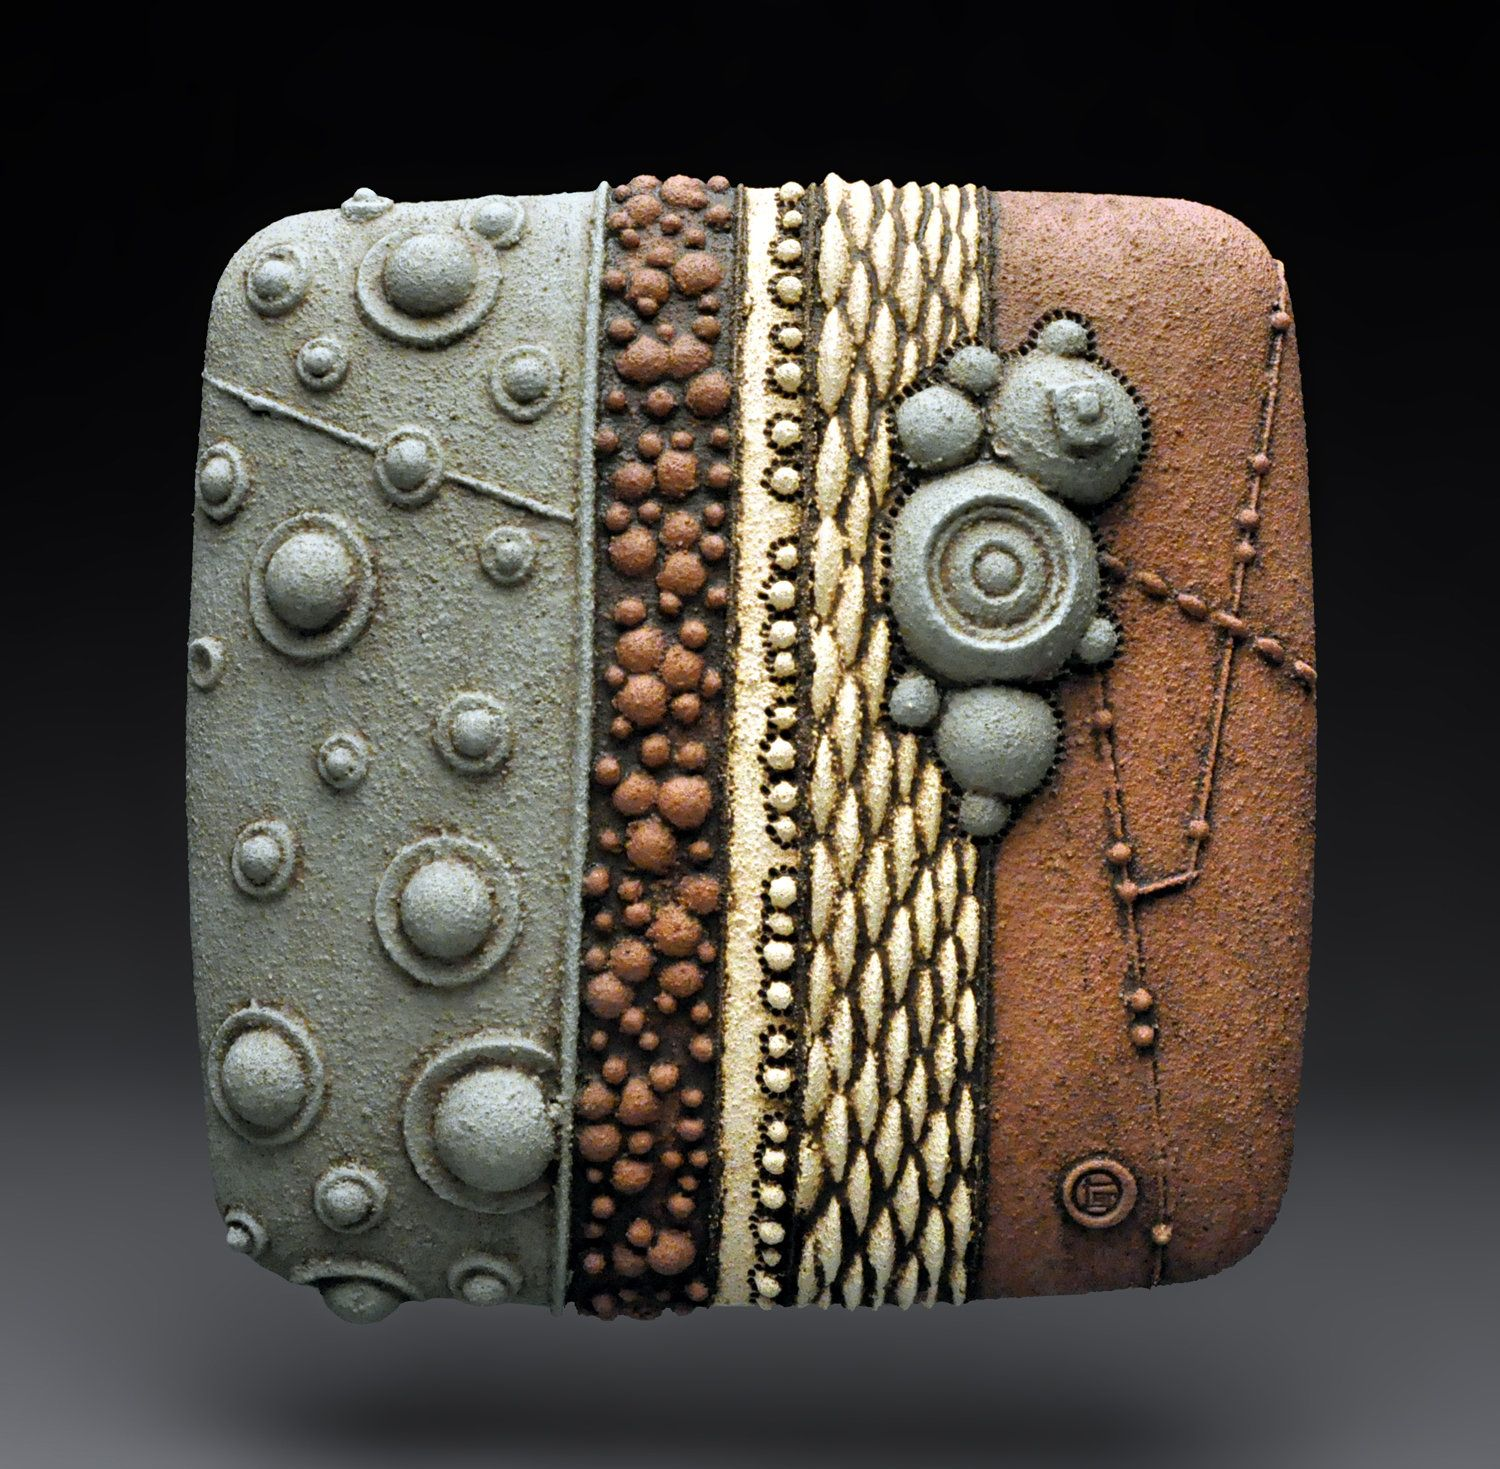 Rudimentary: Christopher Gryder: Ceramic Wall Art   Artful Home